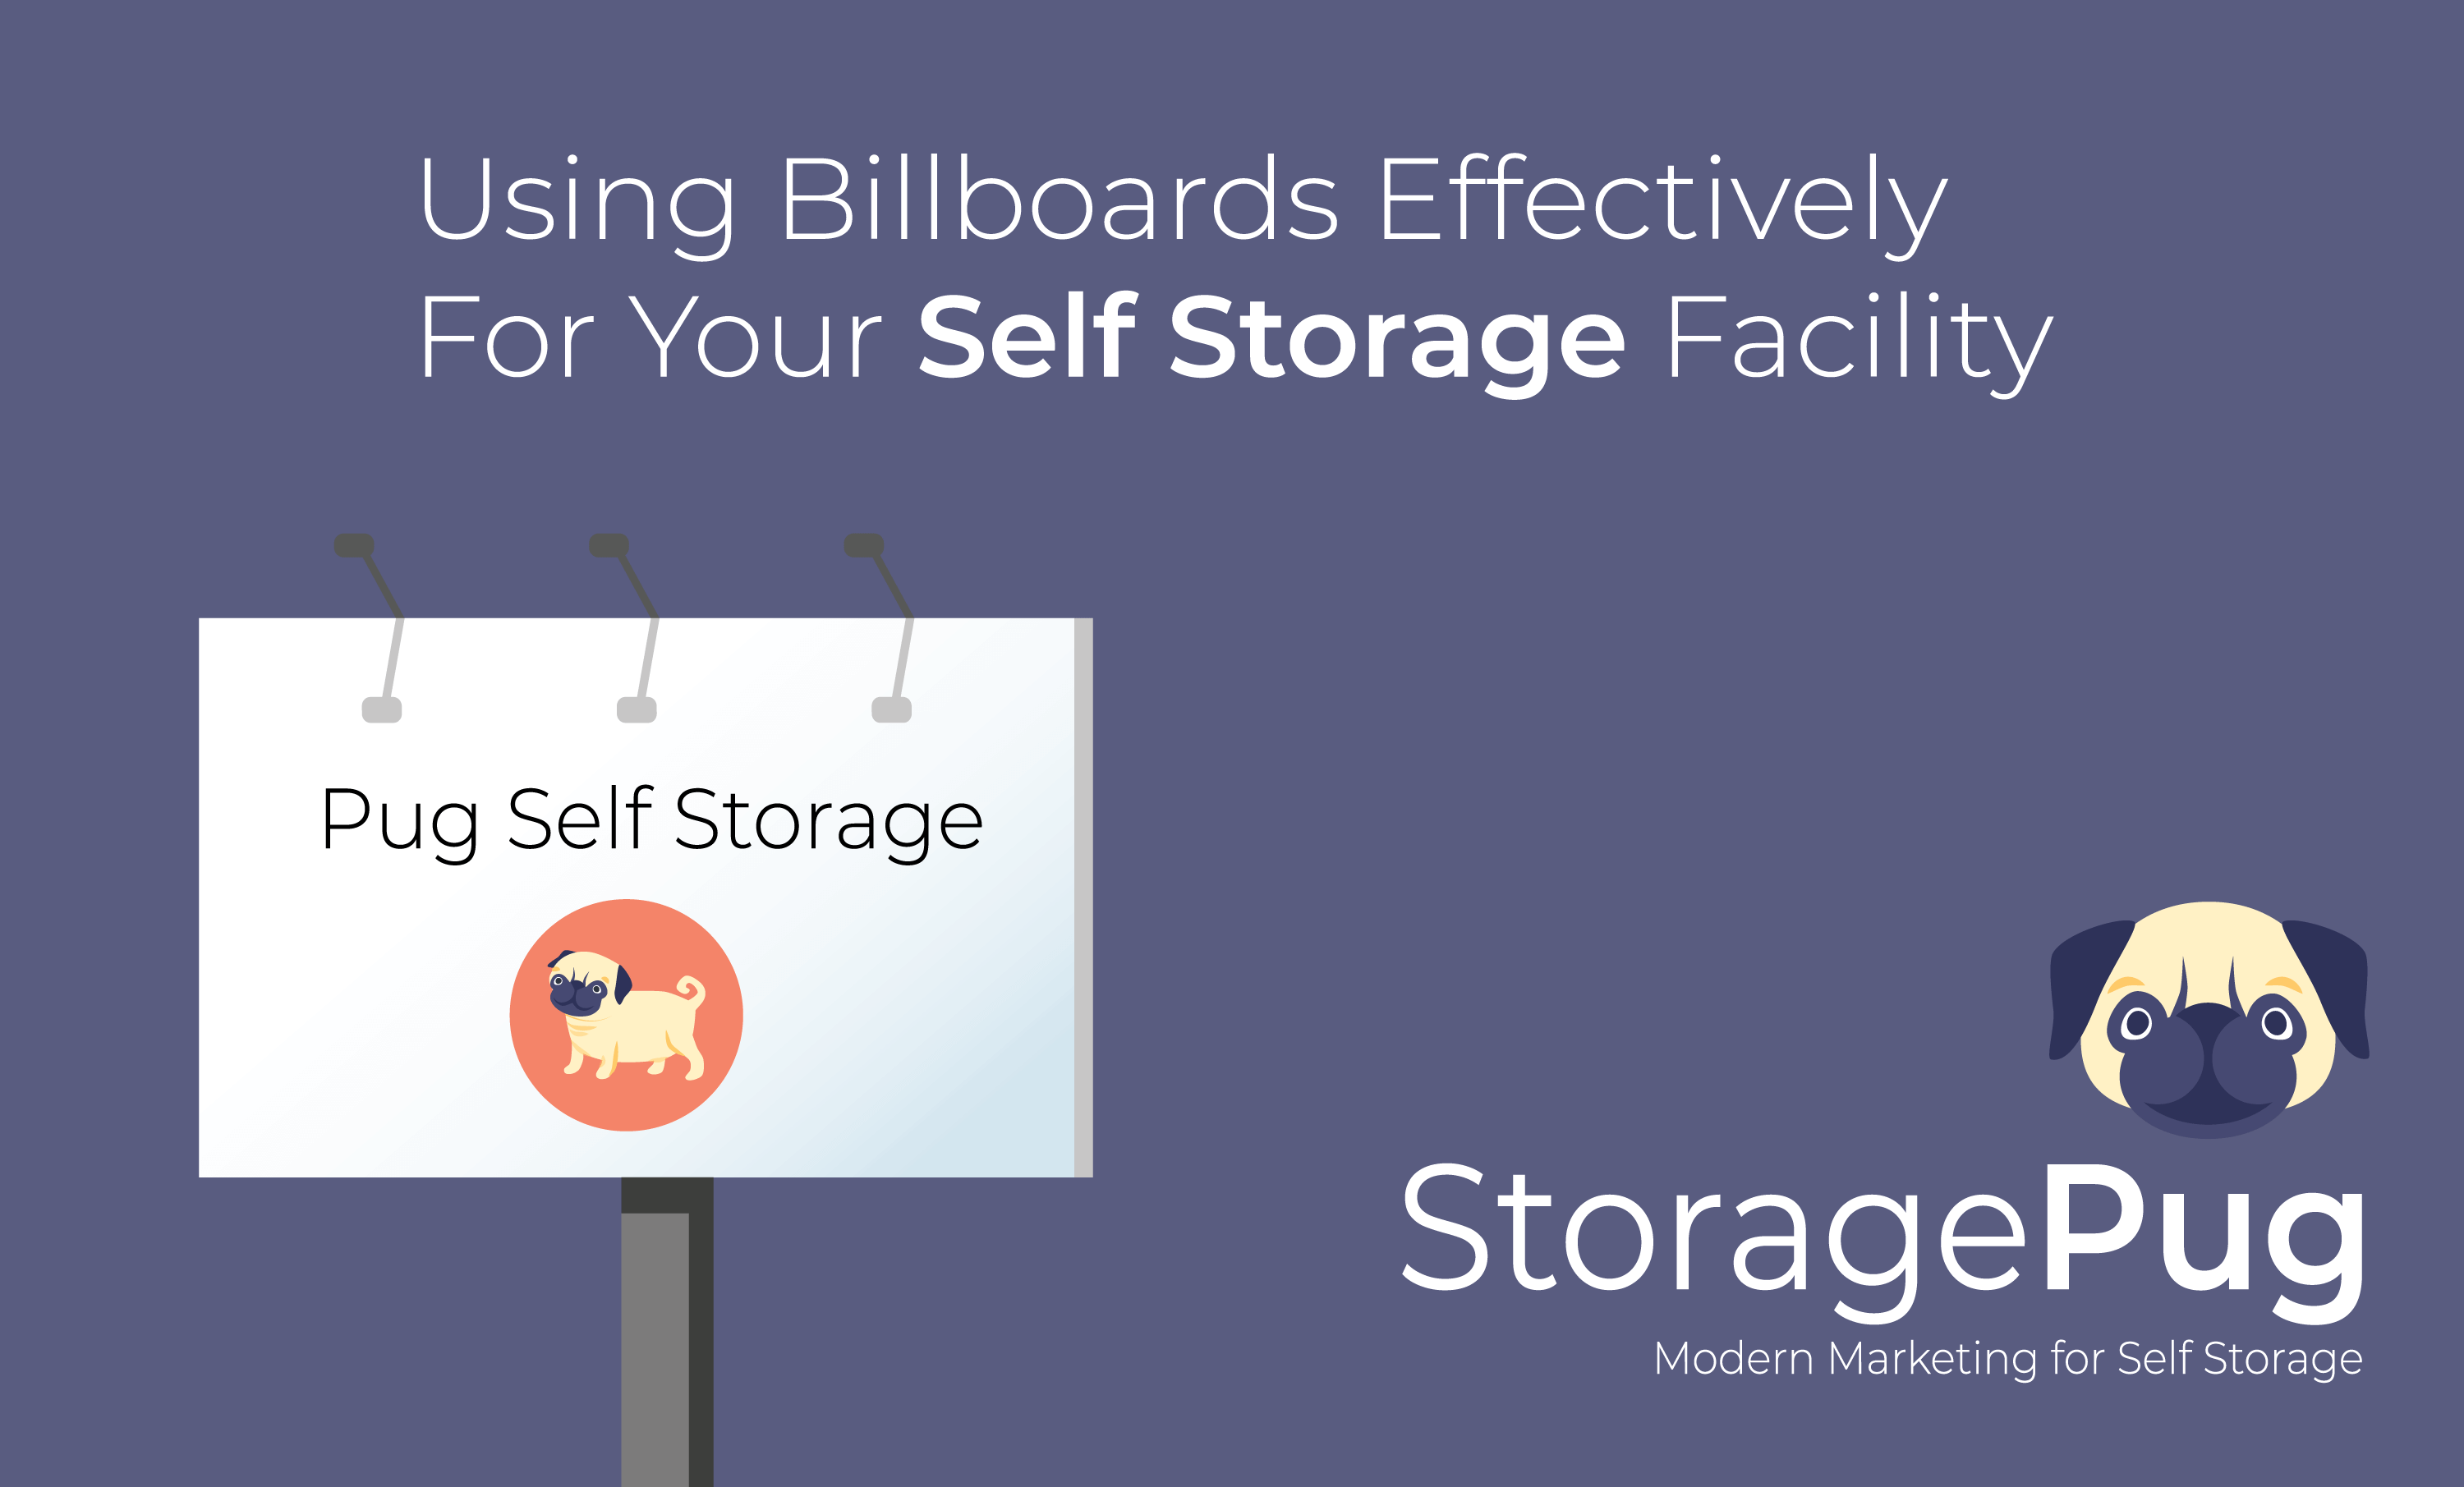 Wondering if billboard advertising is a viable marketing strategy for your self storage facility- The good news is that billboards can be effective.